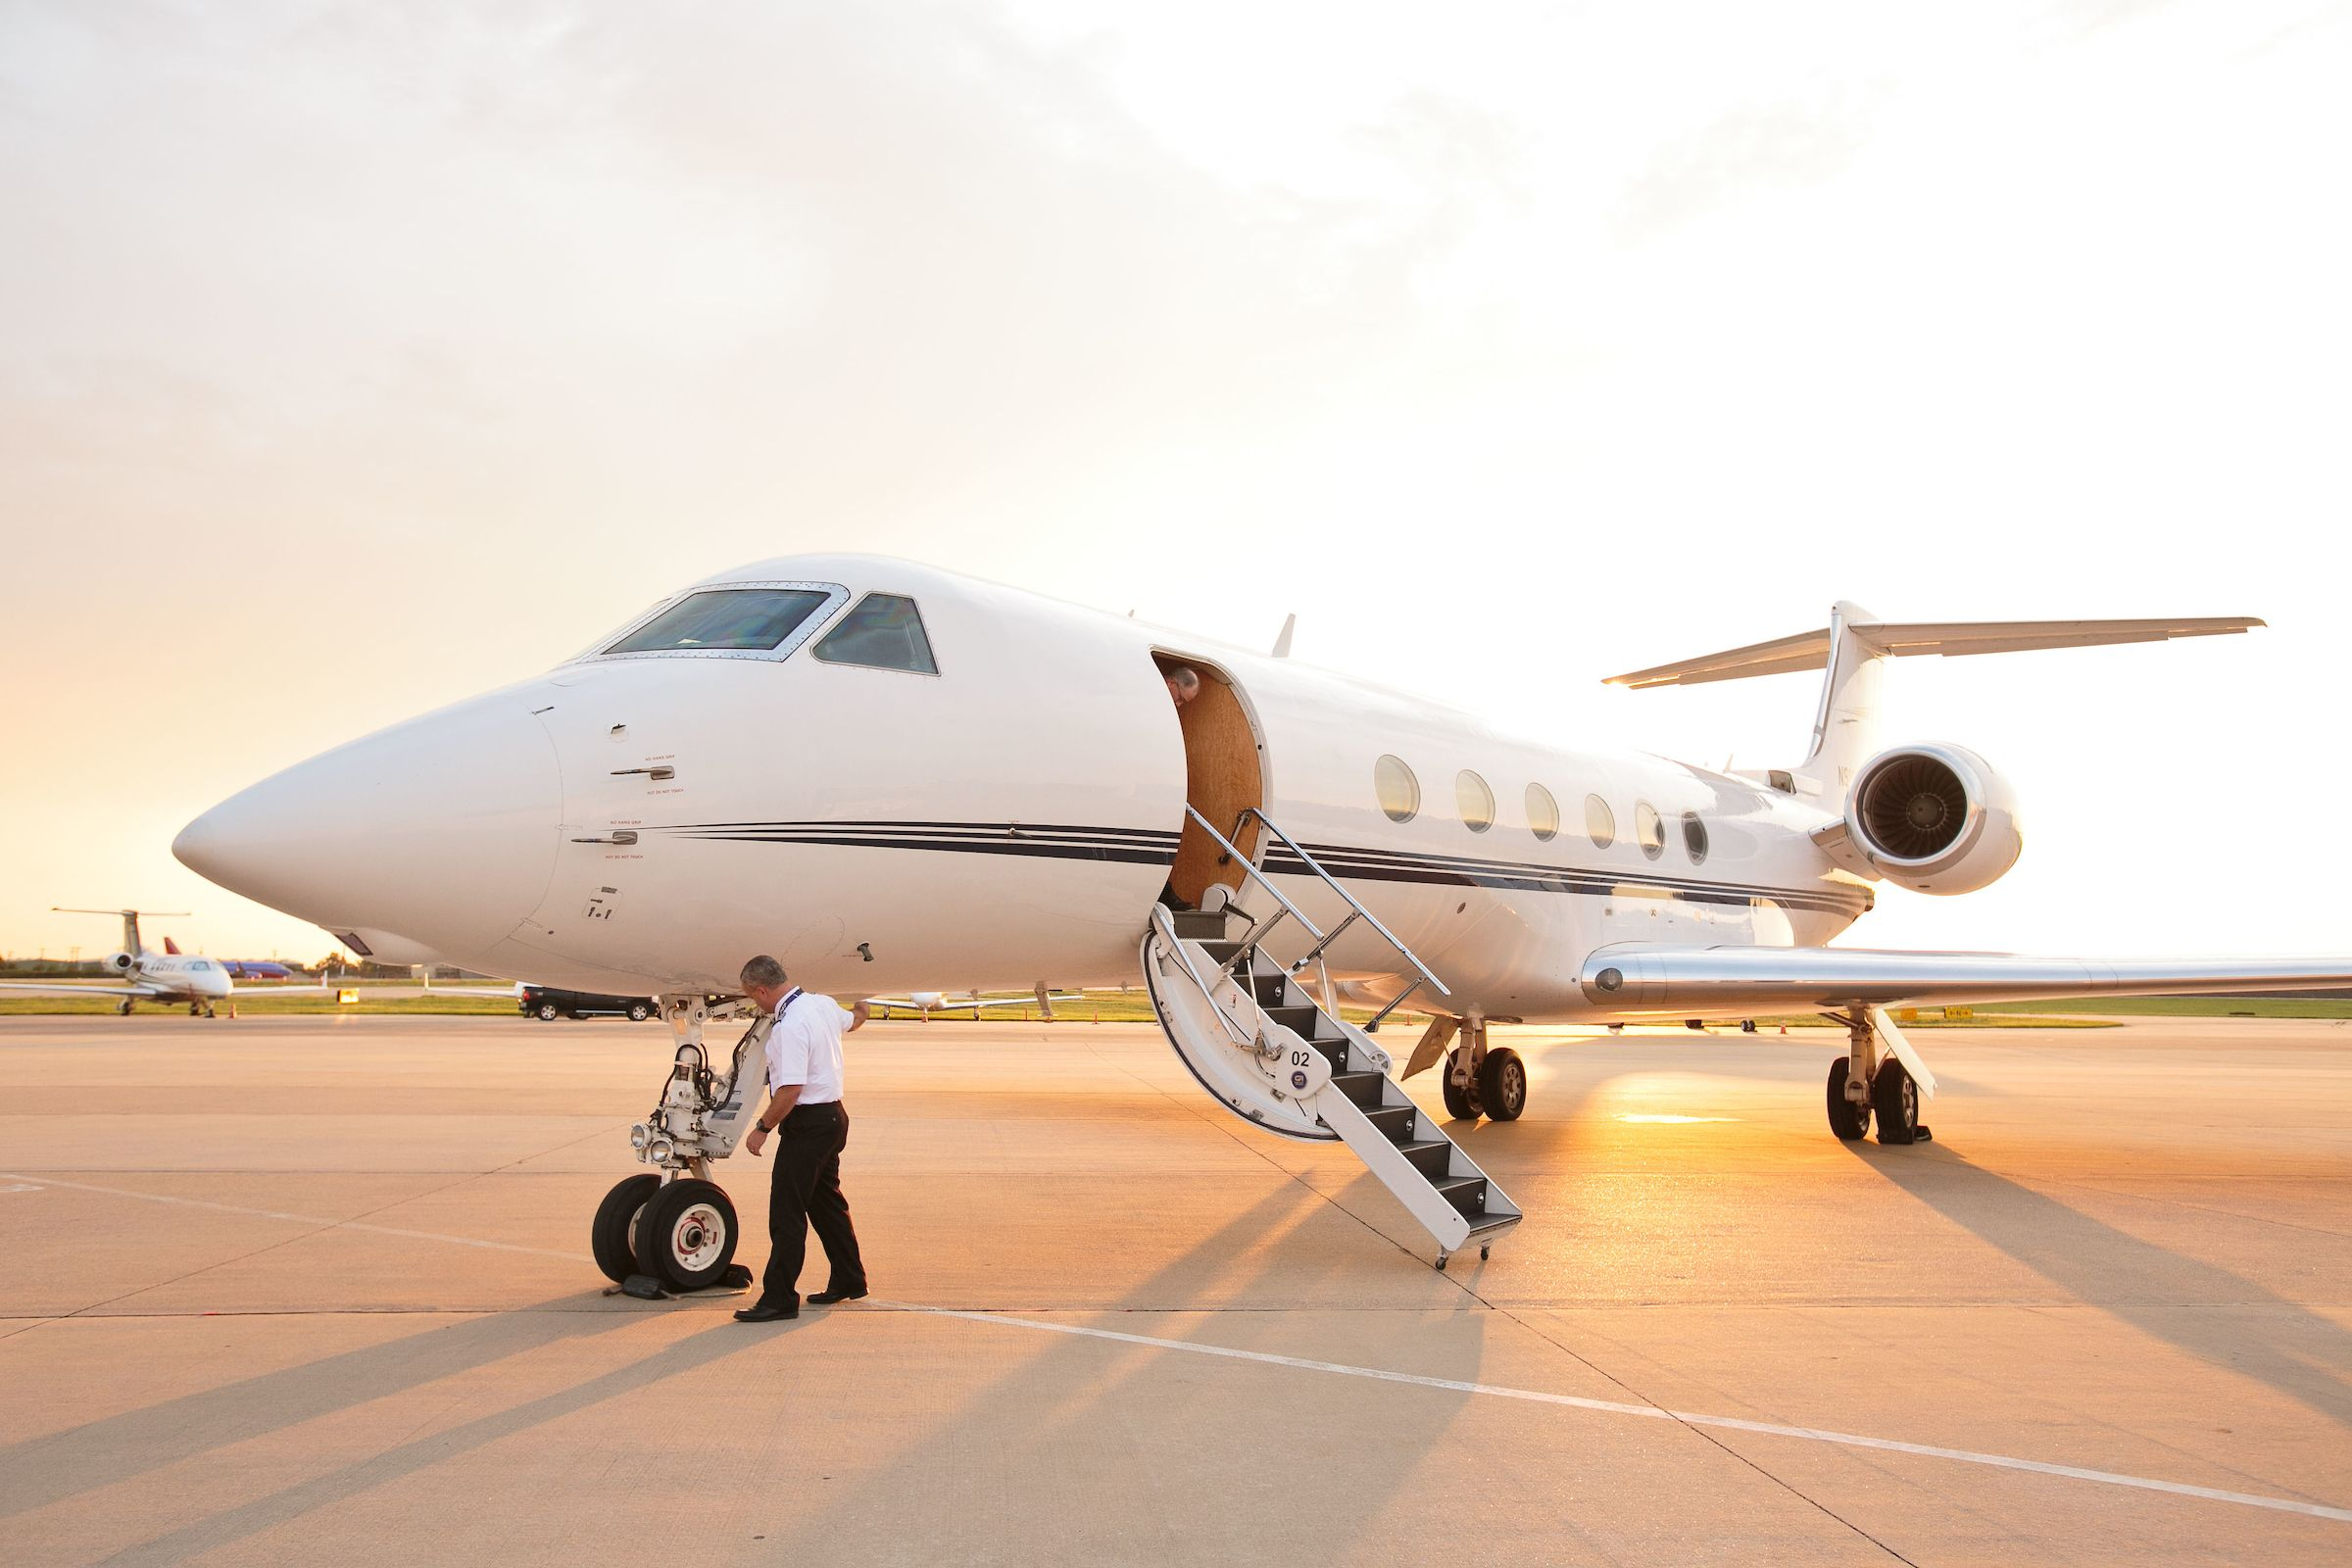 Guests arrived by private jet to attend this Surprise 50th